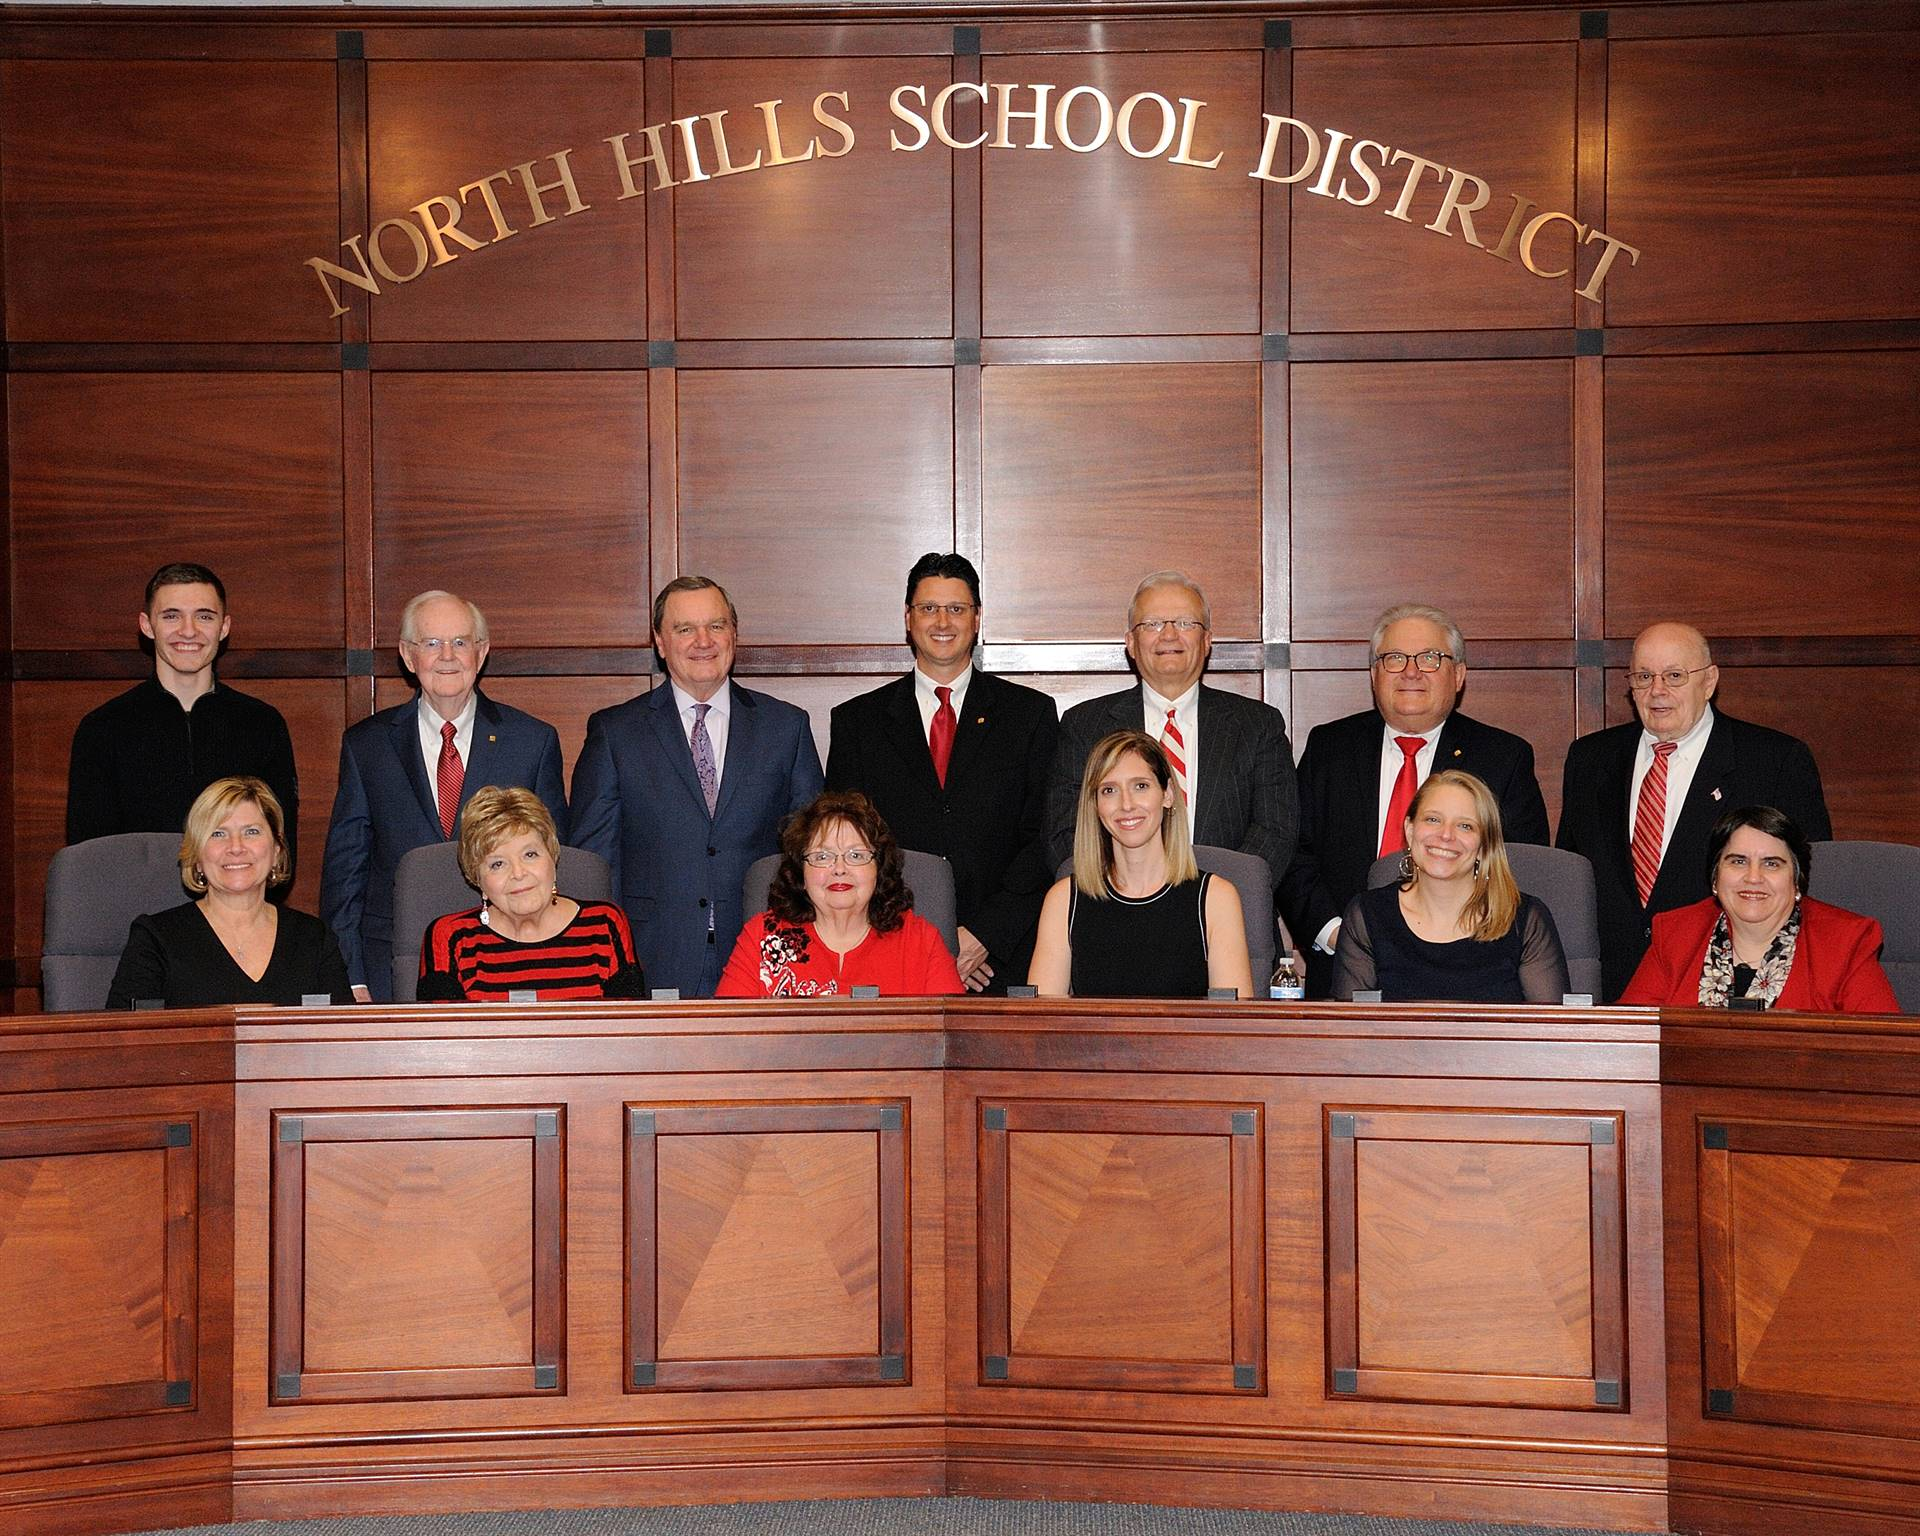 NHSD School Board Members for 2019 and Student Representatives